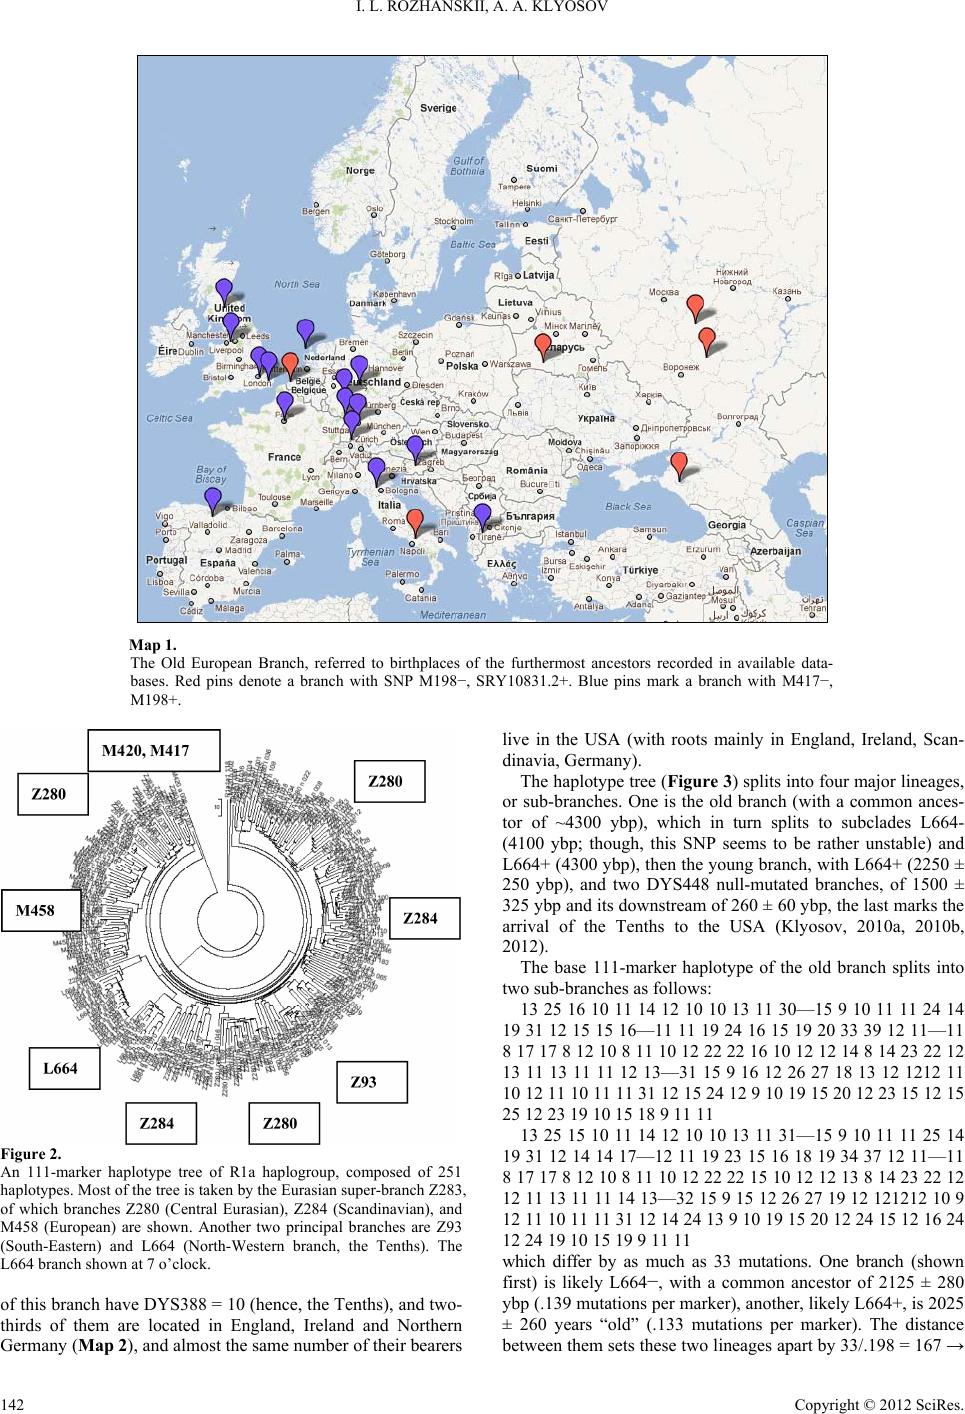 Haplogroup R1a, Its Subclades and Branches in Europe During